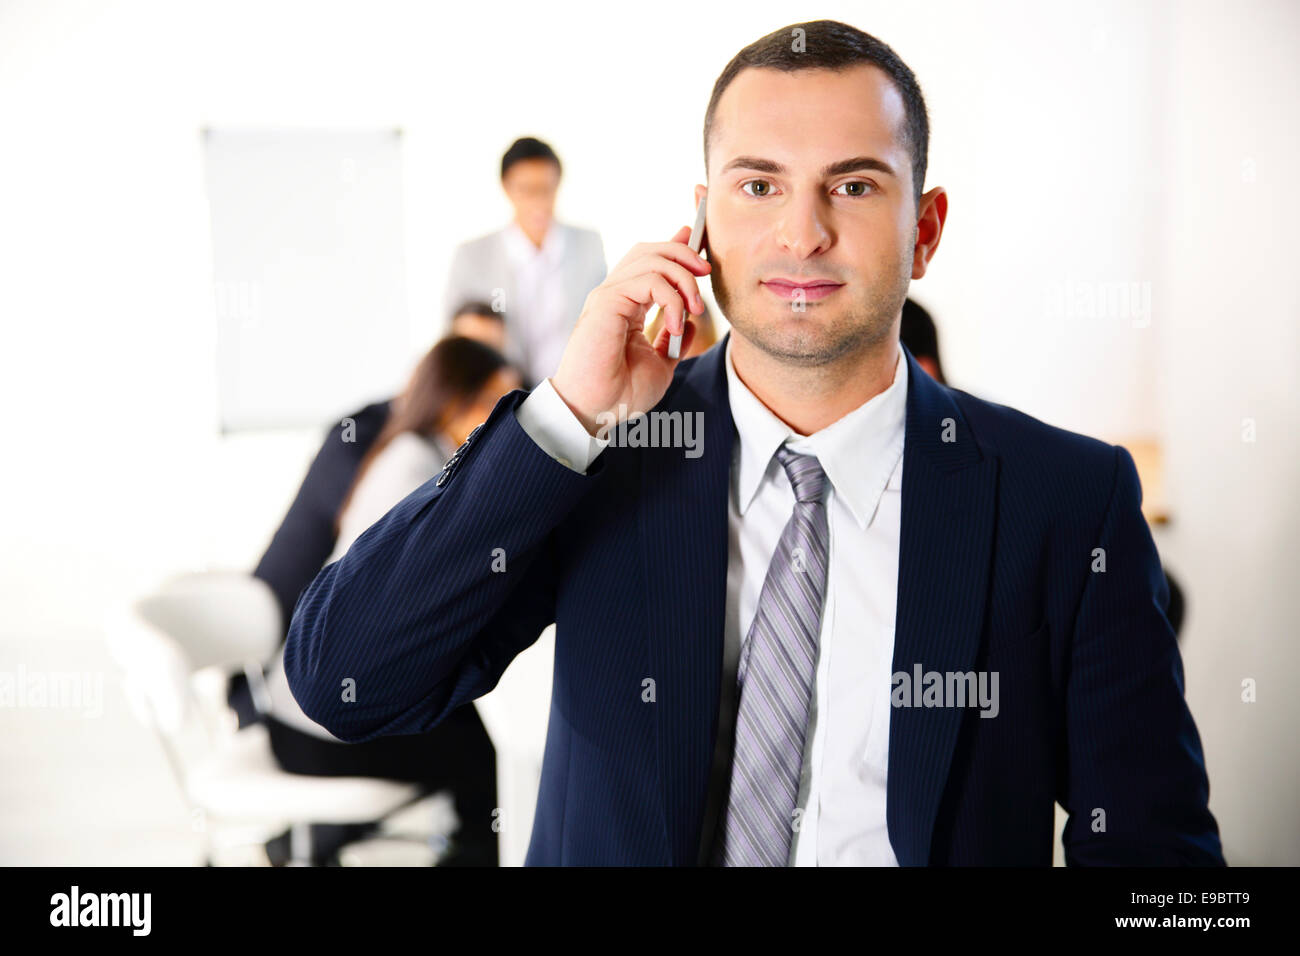 Businessman talking on the smartphone in front of business meeting - Stock Image